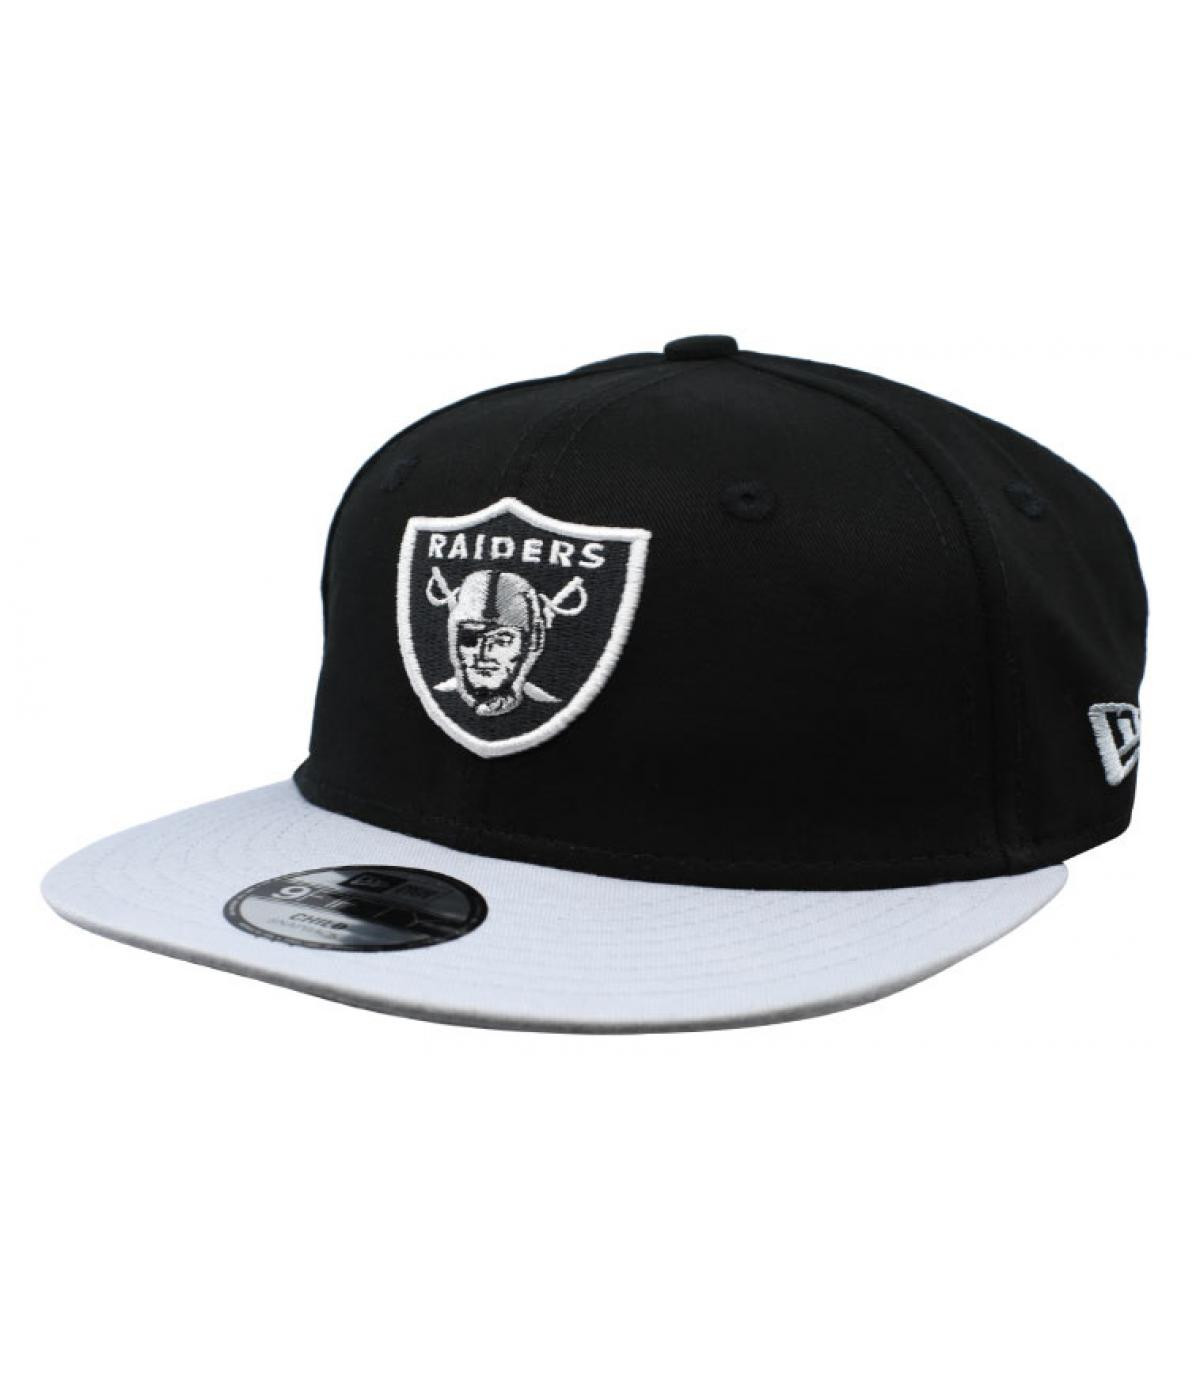 Détails Snapback Contrast Team Raiders 9Fifty - image 2